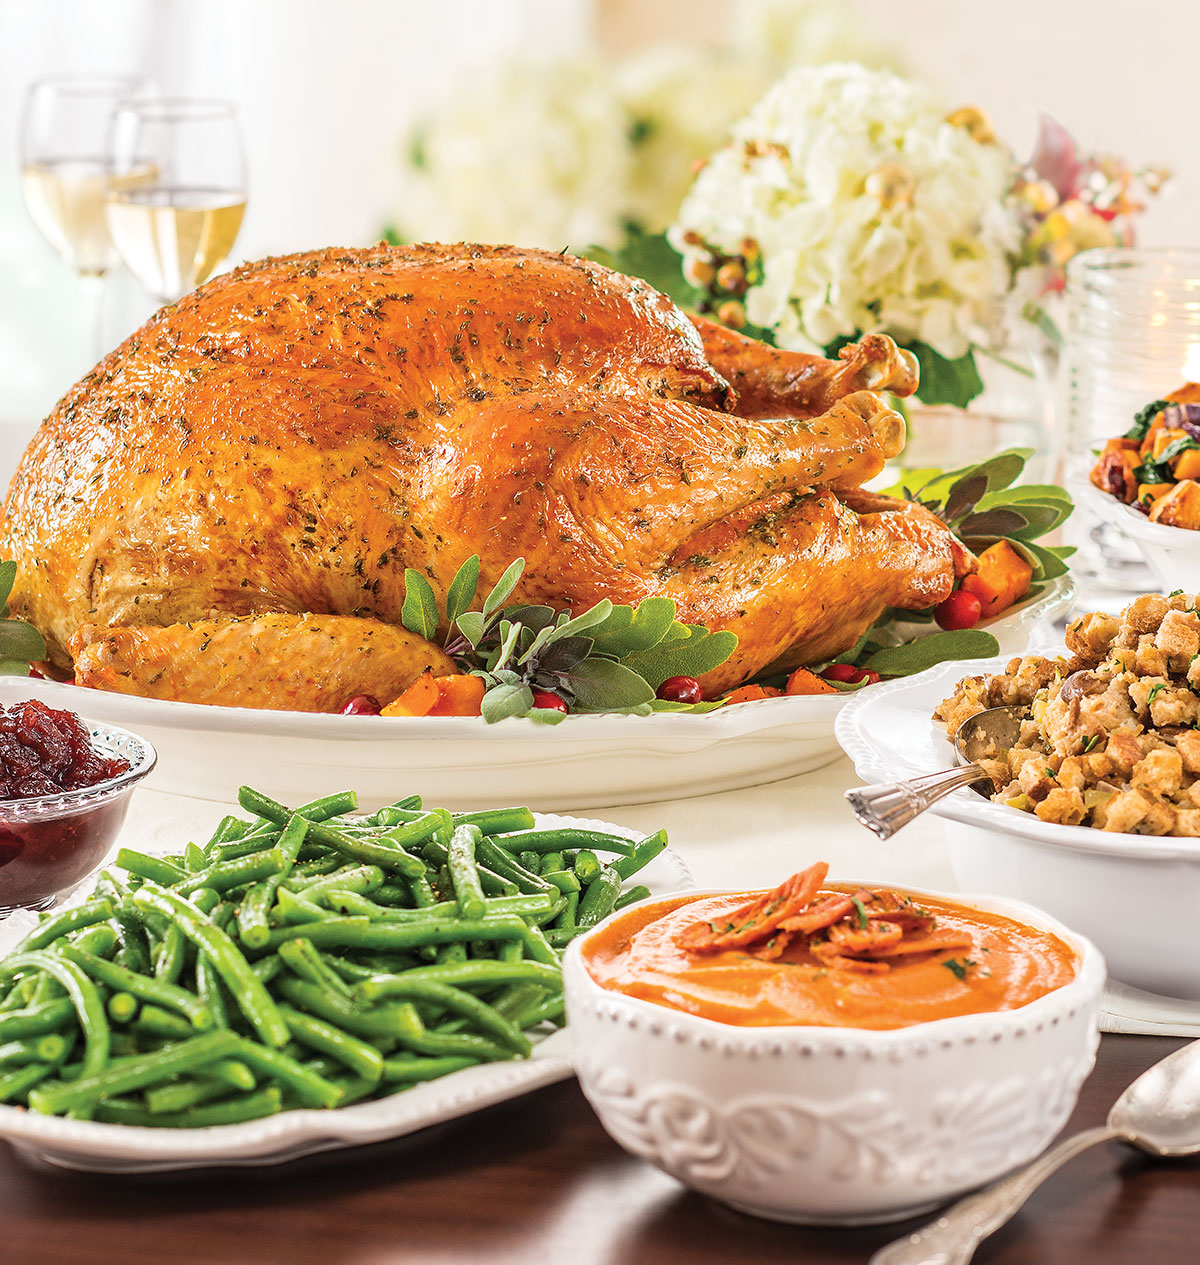 3 Simple Tricks To Prevent Holiday Weight Gain